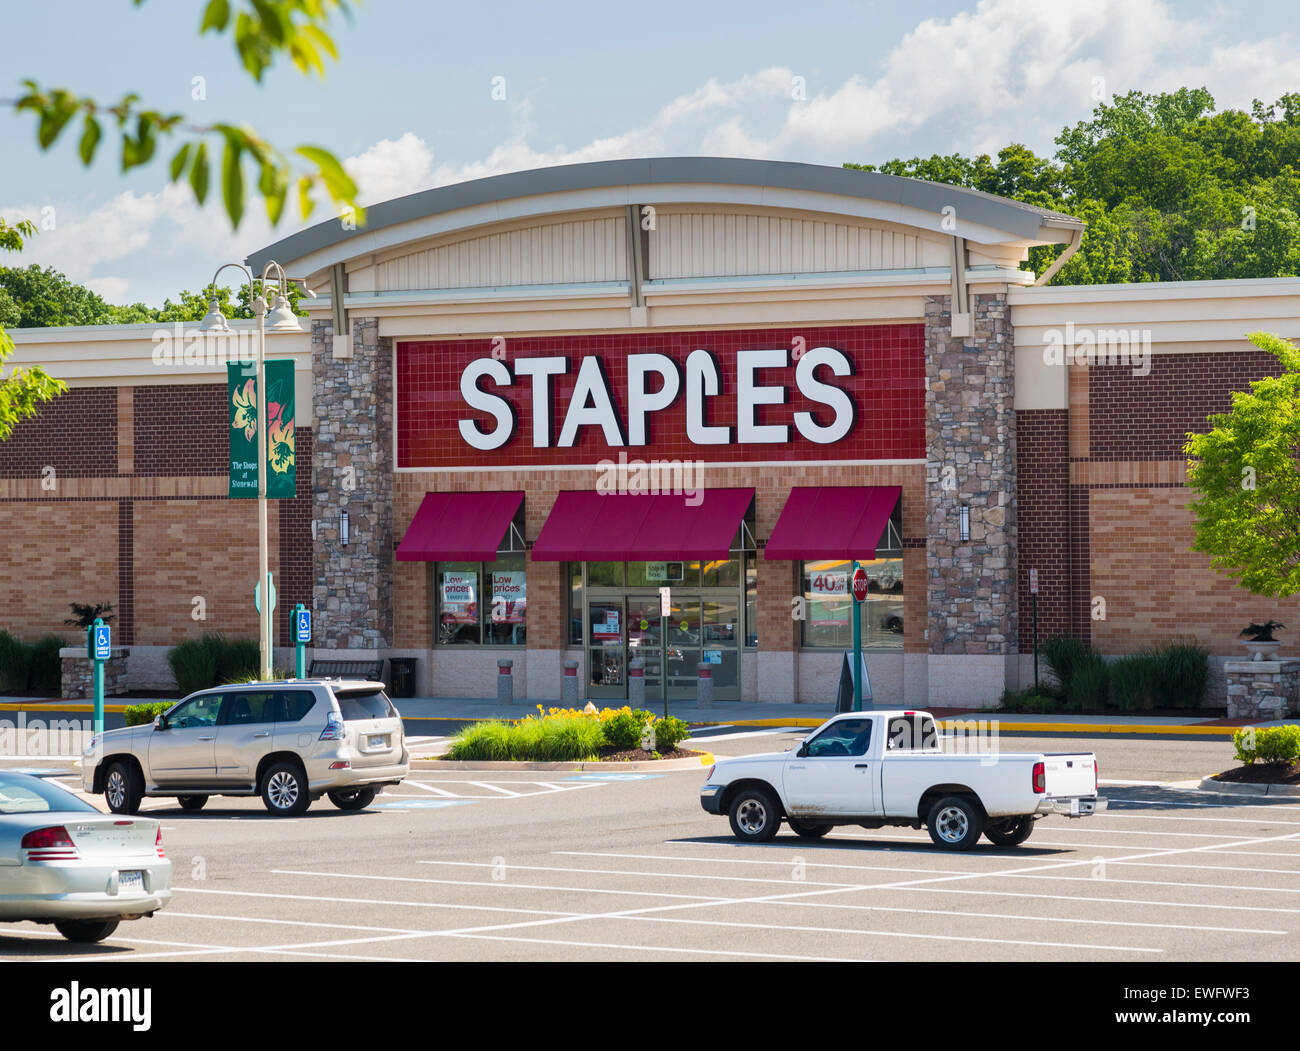 Staples Office Supply store in Gainesville, Virginia, USA - Stock Image